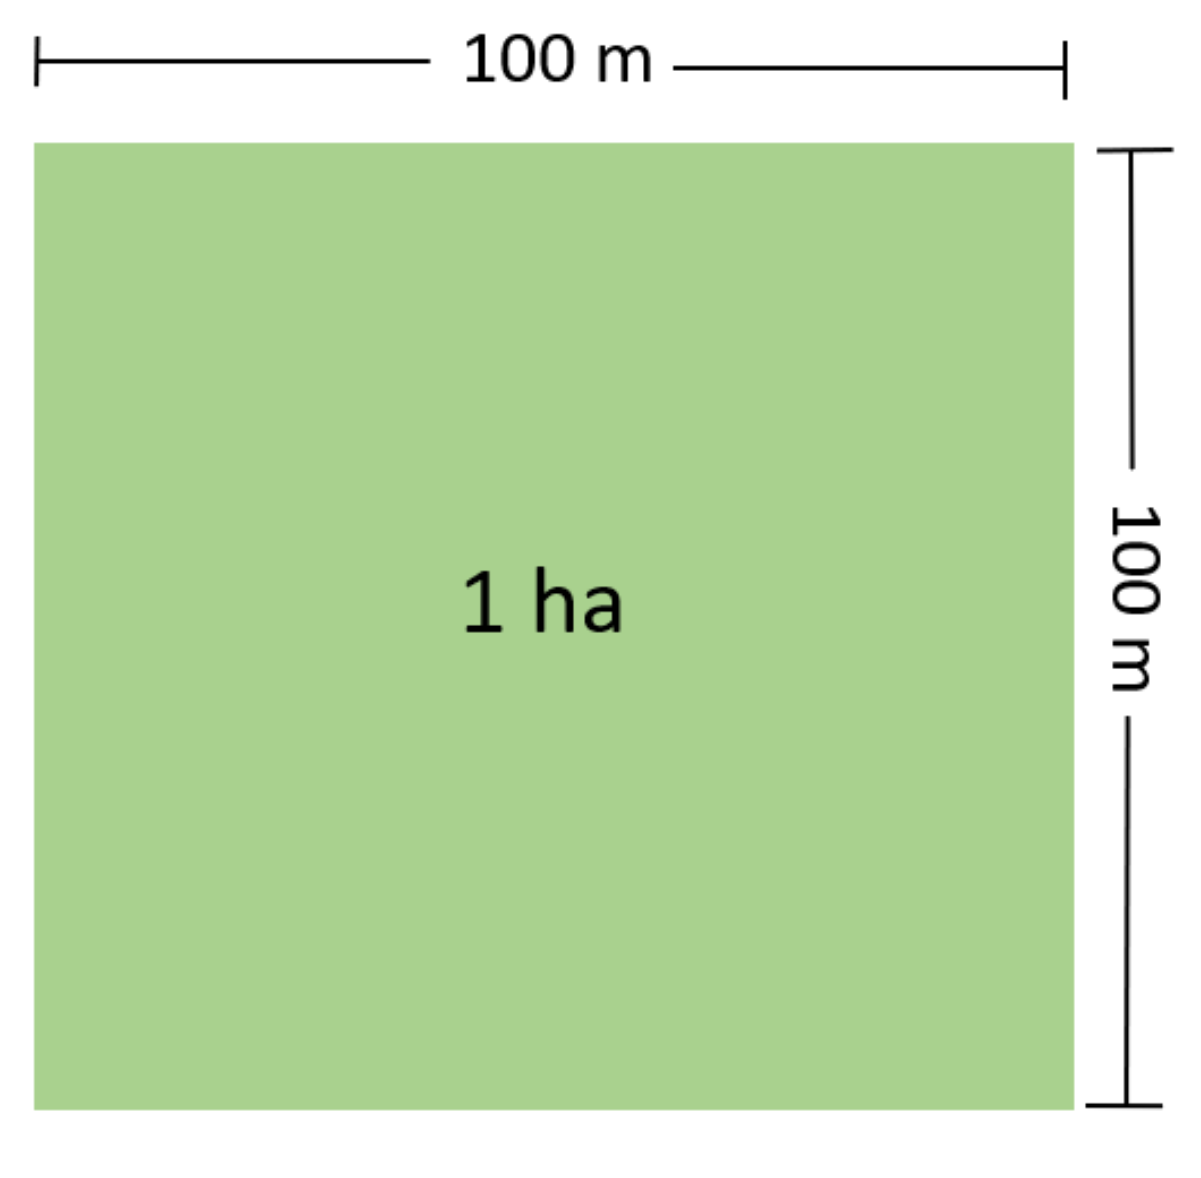 1 hectare is equal to how many metres